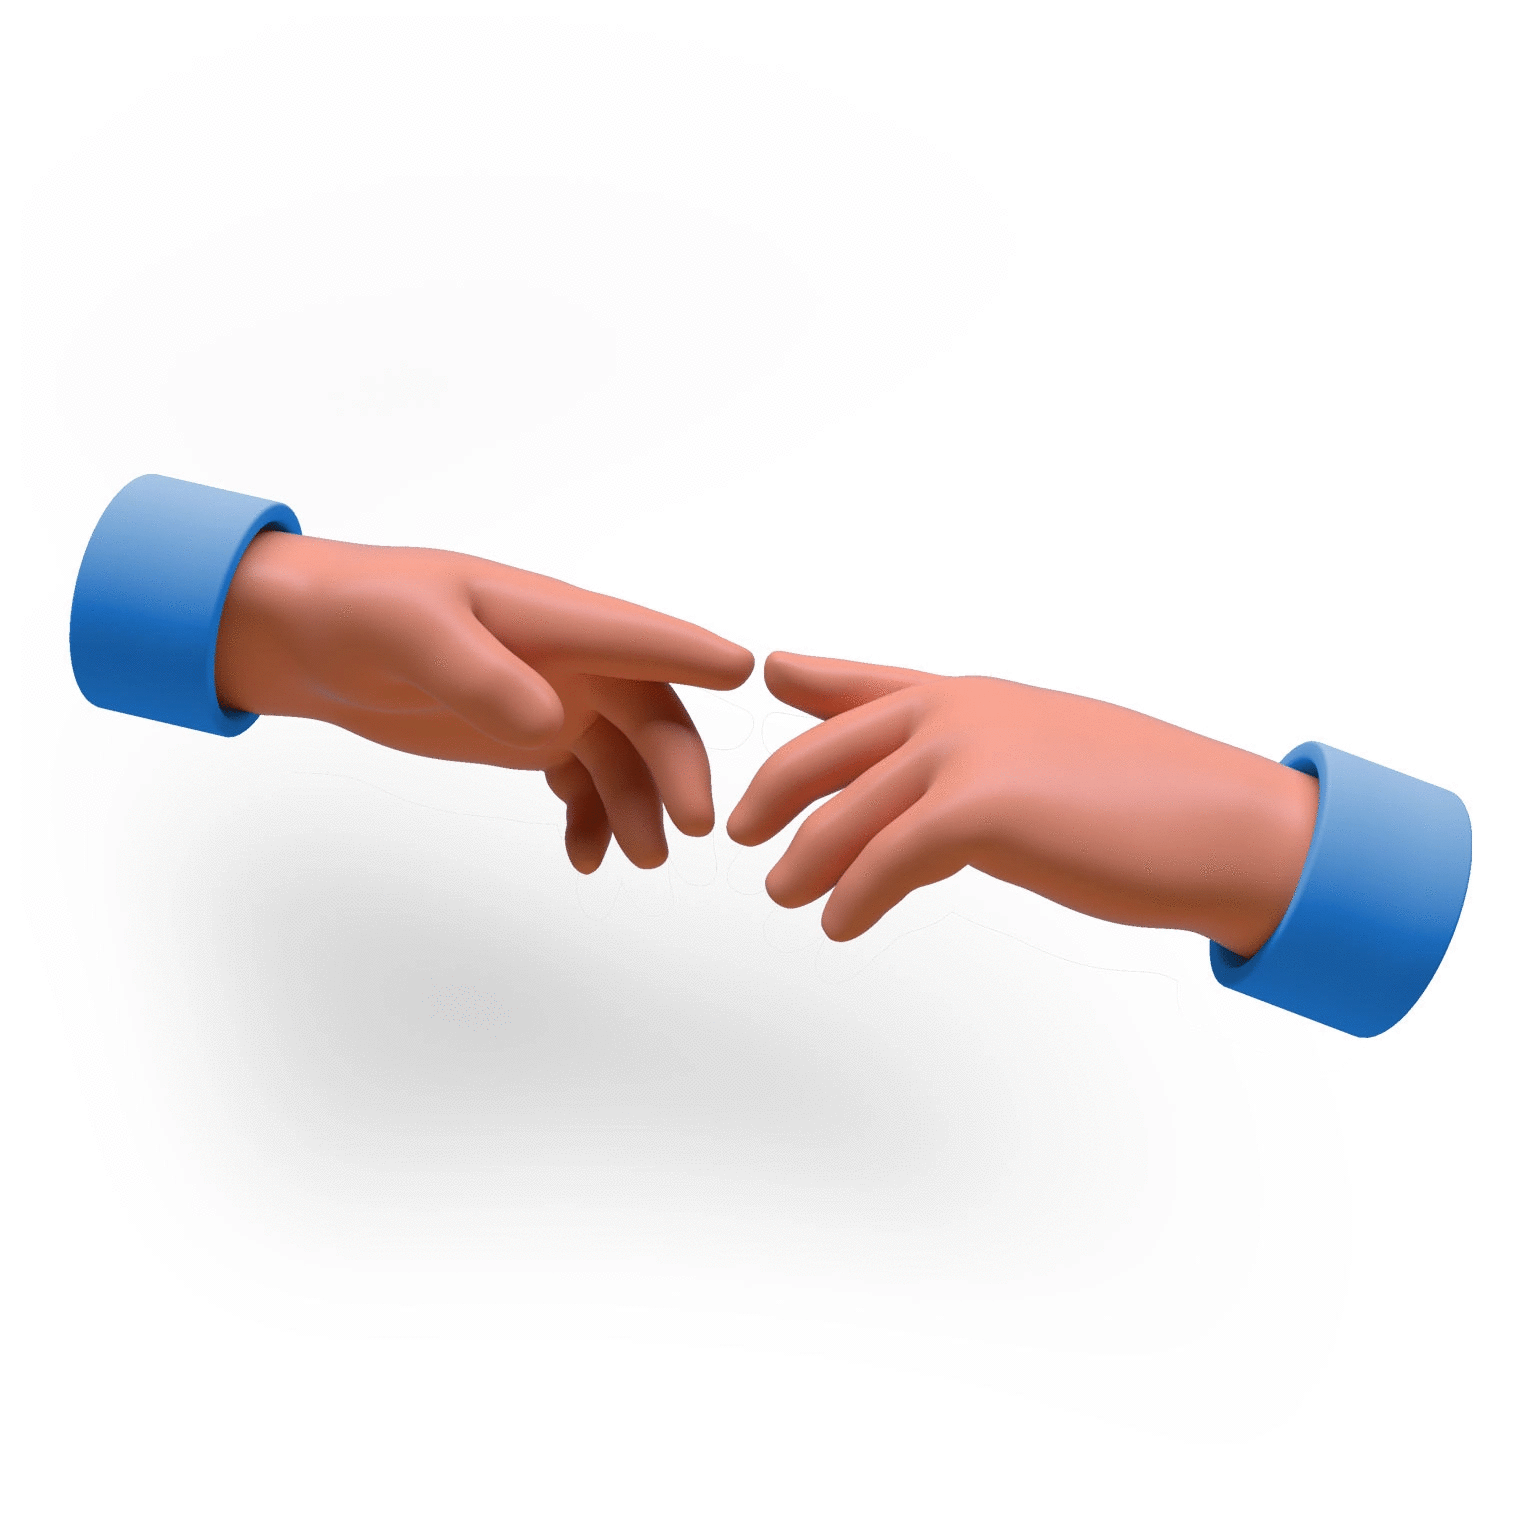 Preview of 3D Hands Illustrations